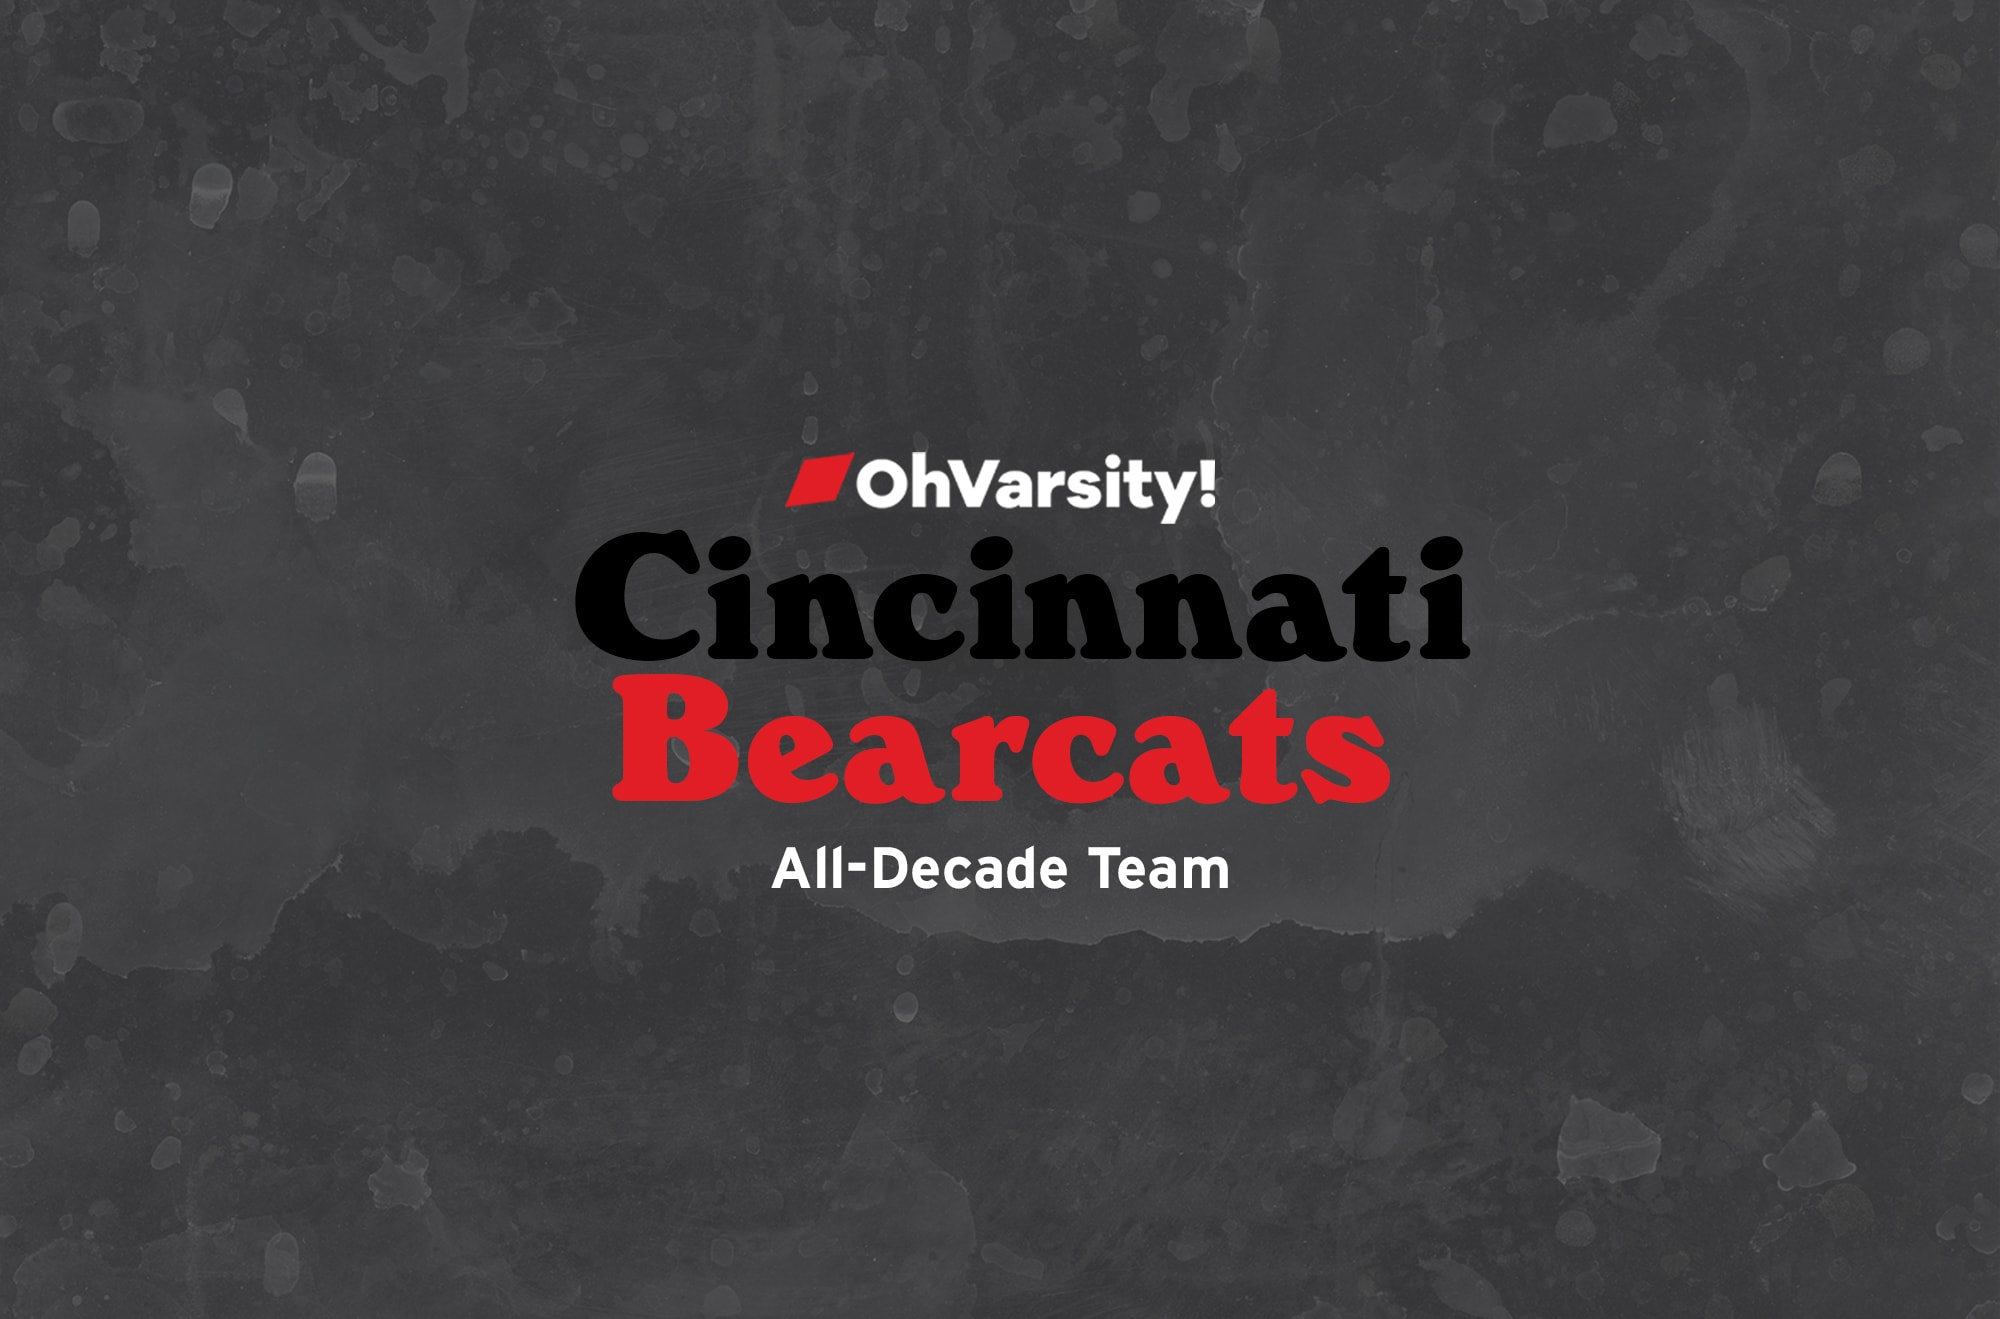 Cincinnati Bearcats Basketball All-Decade Team — OhVarsity!